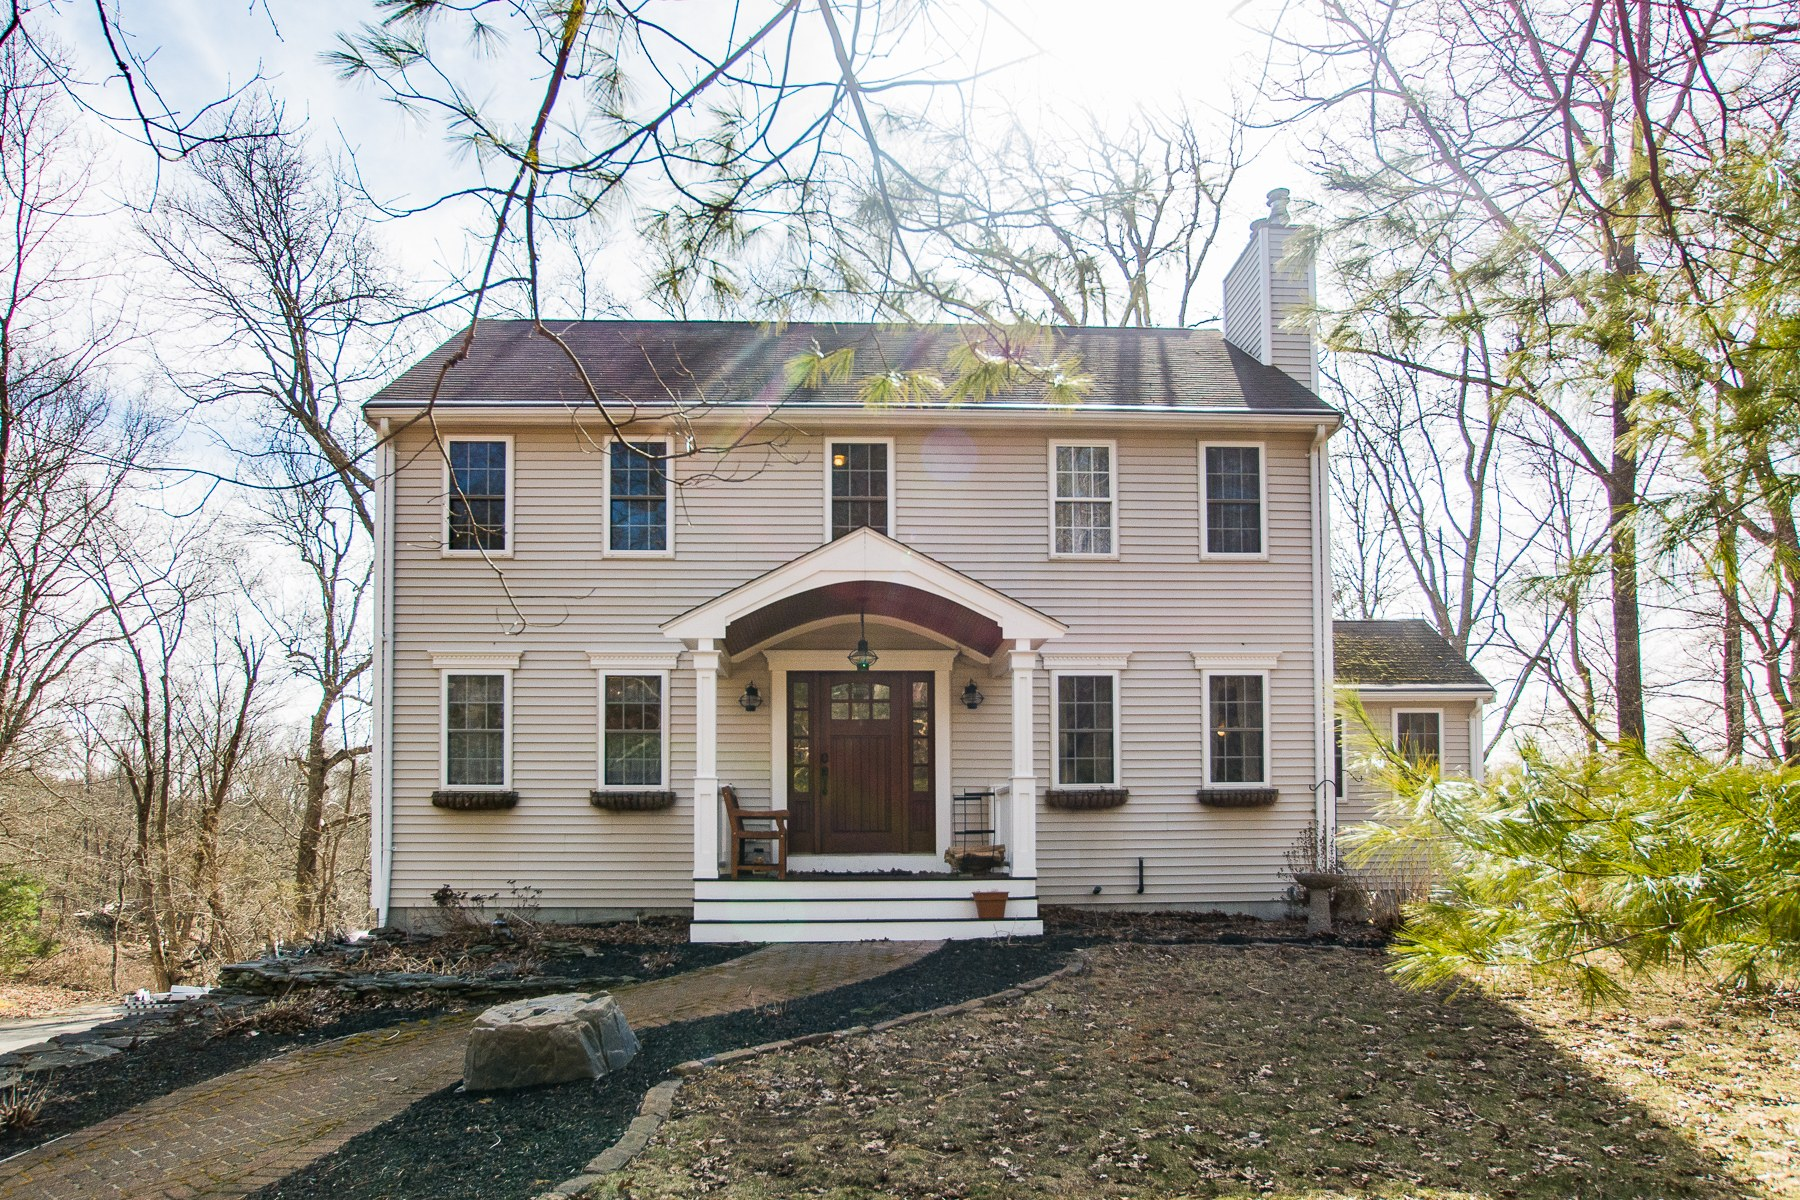 Single Family Homes for Sale at 1213 Plymouth St., Bridgewater, MA 1213 Plymouth St. Bridgewater, Massachusetts 02324 United States